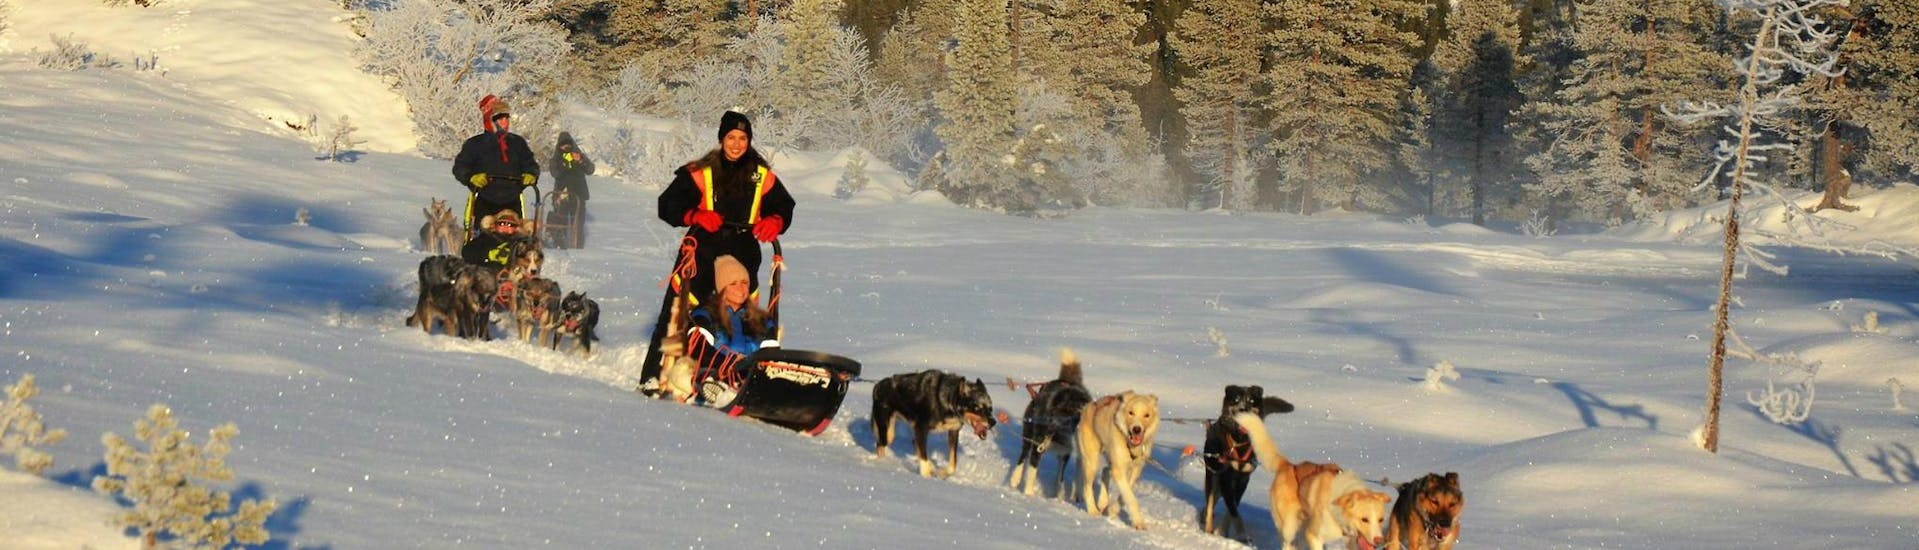 The participants of the Dog Sledding near Trondheim in Kopperå - 2 Day Tour with Norway Husky Adventure are having fun while mushing their team of sled dogs through the glistening snow.